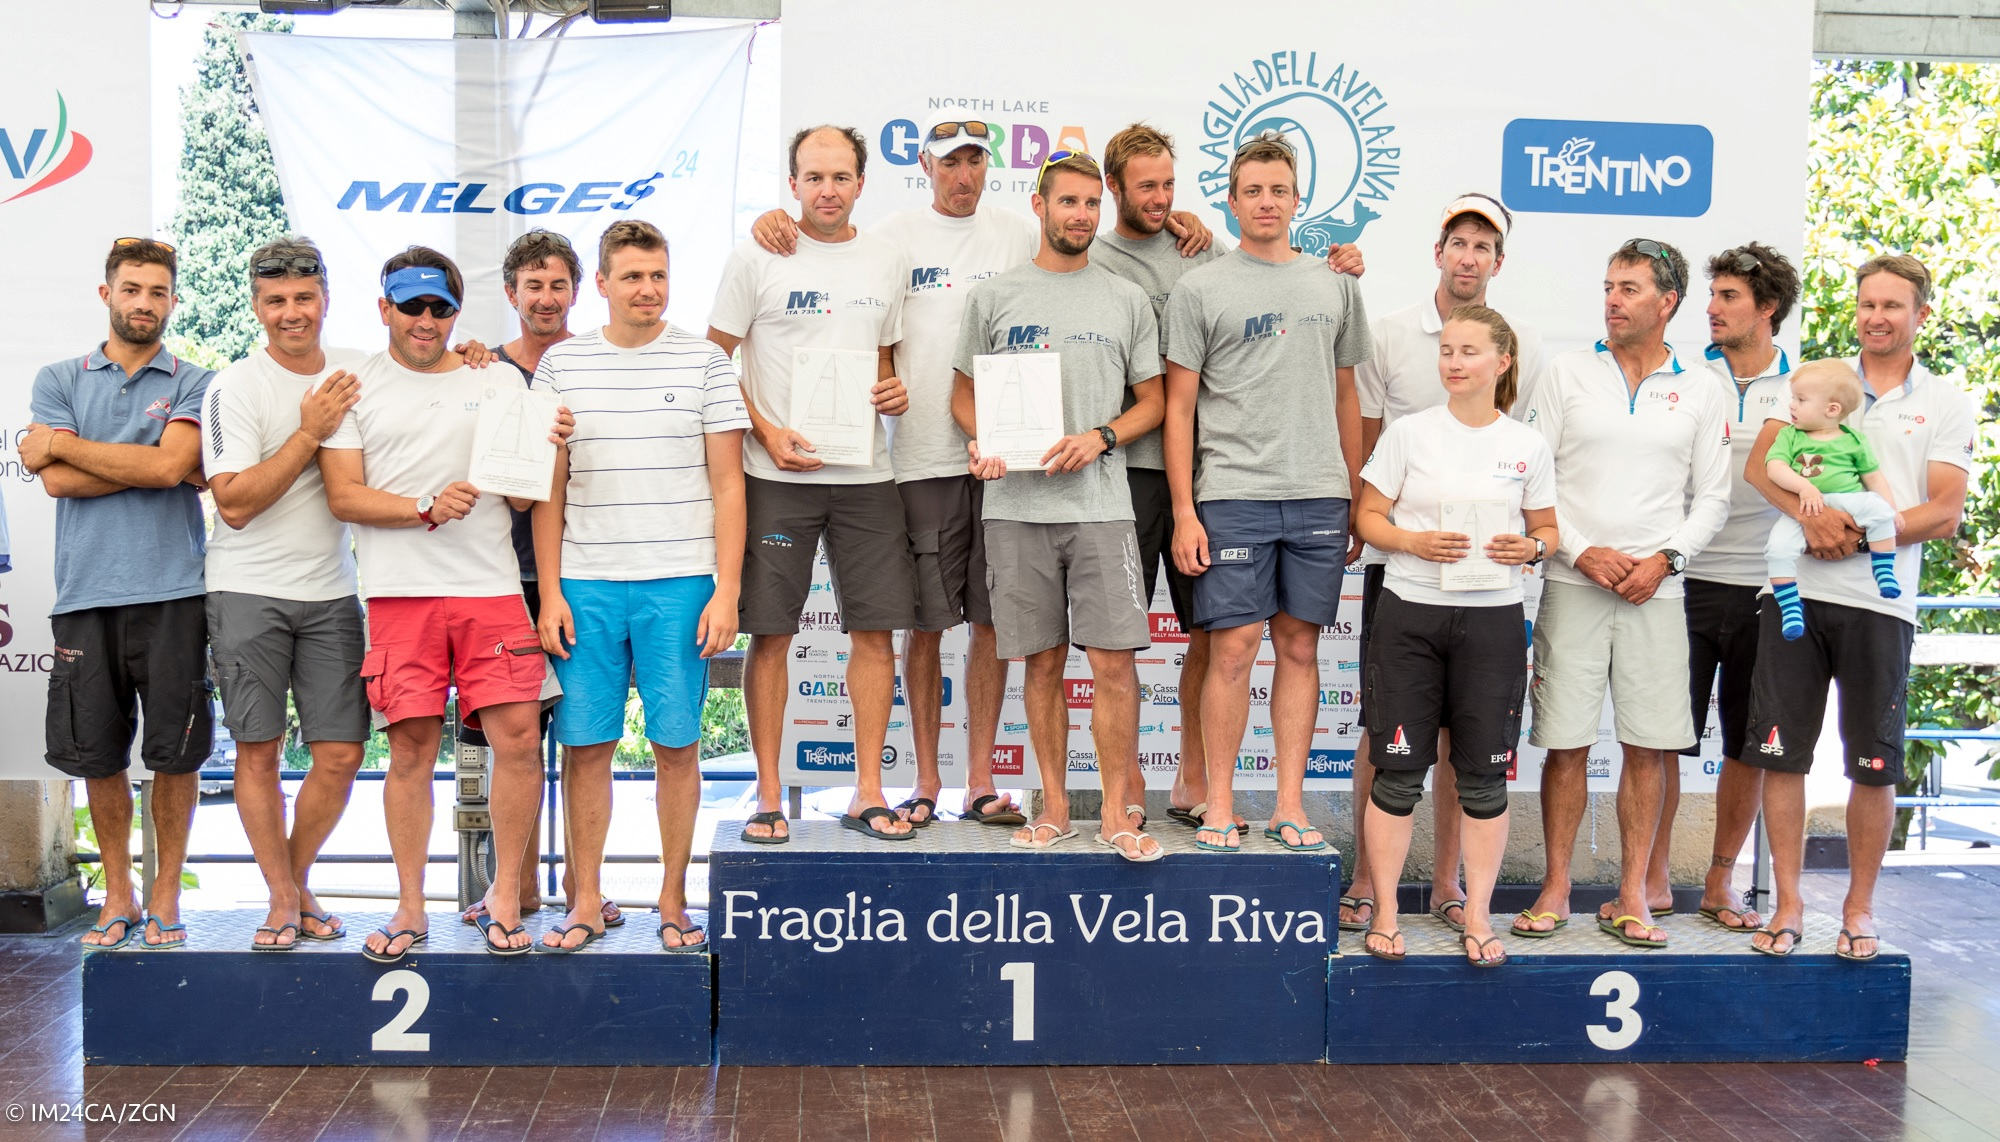 The winners of the Melges 24 European Sailing Series 4th event in Riva del Garda